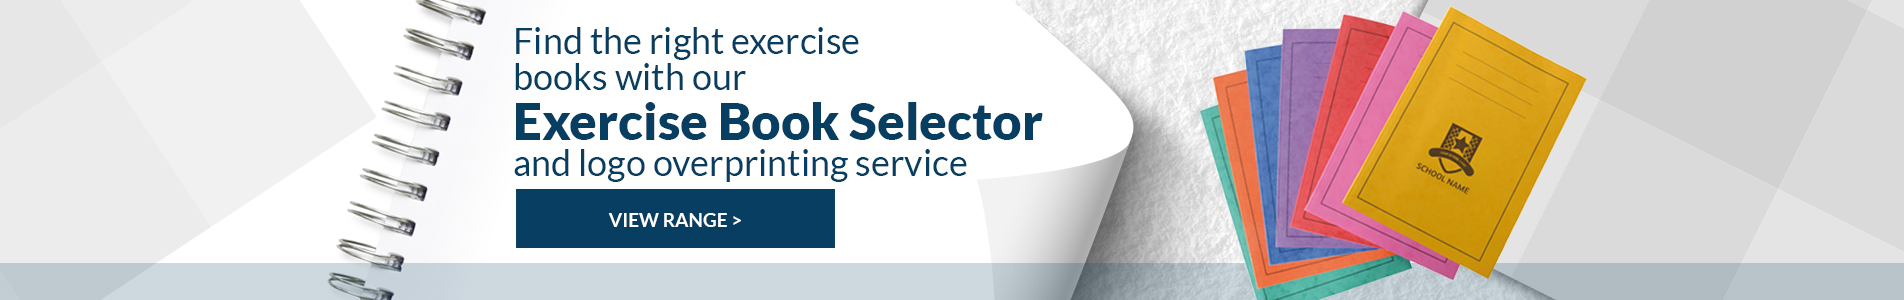 Shop our Exercise Book Selector and Logo Overprinting Service